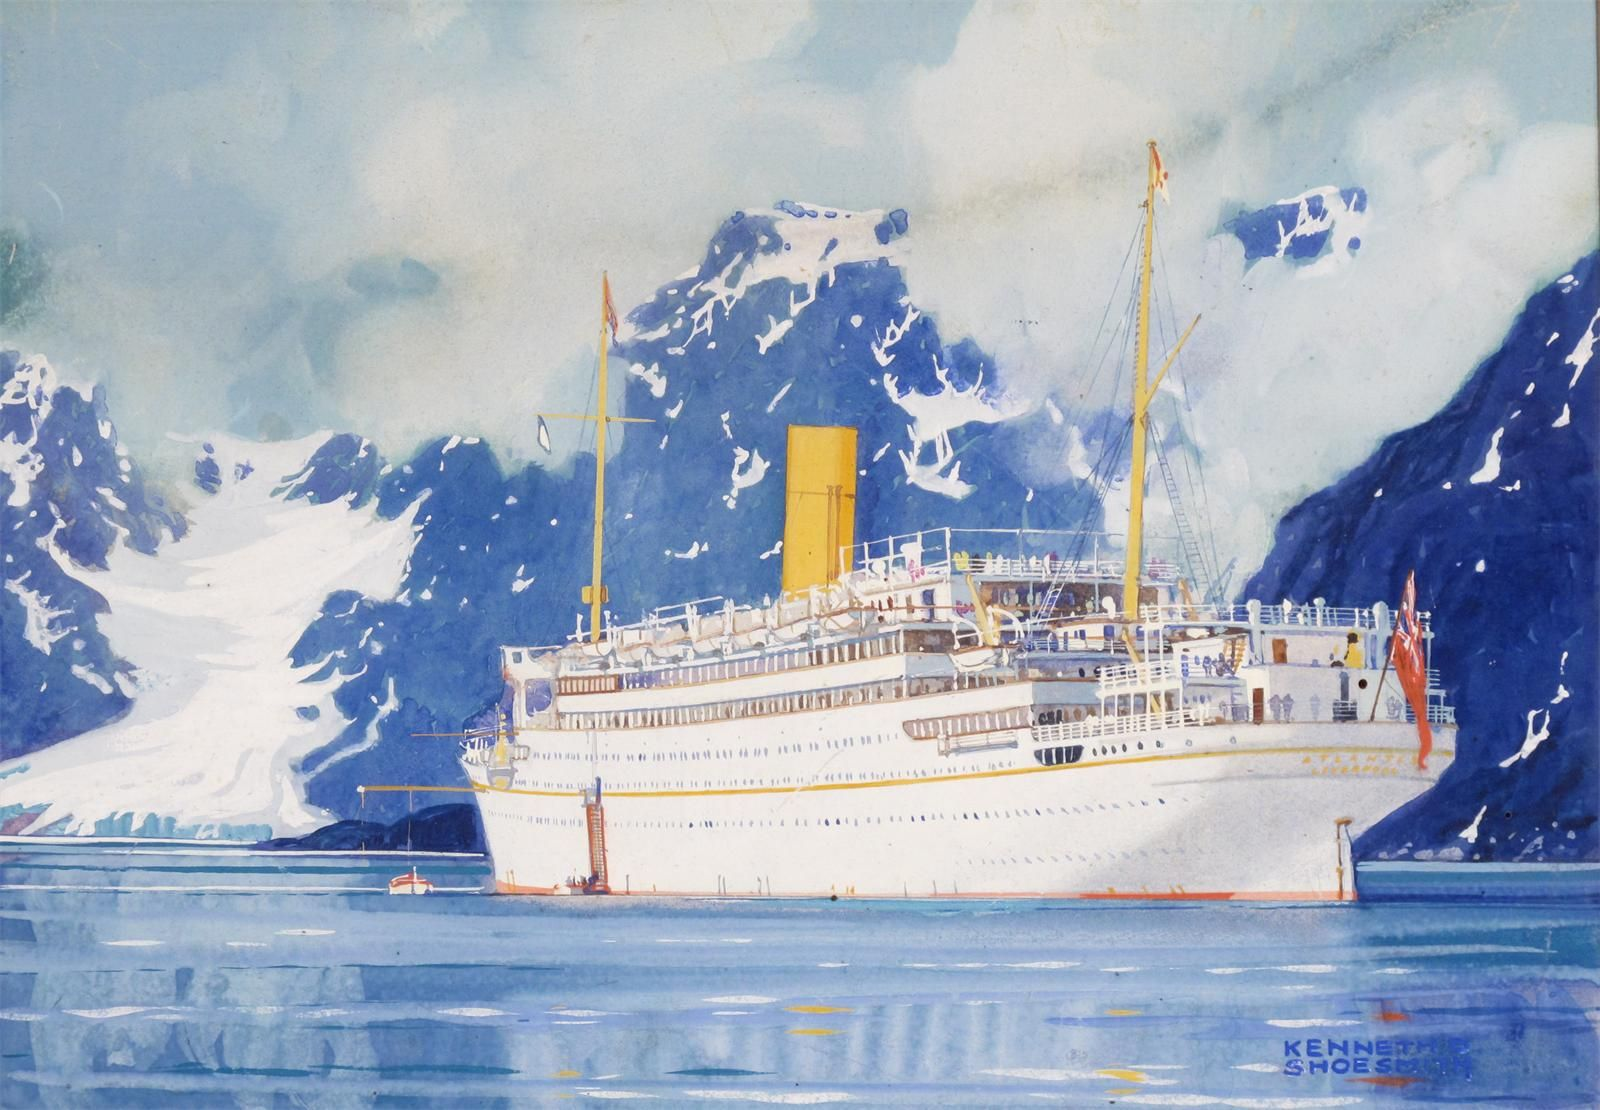 Kenneth Denton Shoesmith 1890 1939 Rms Atlantis In A Fijord Ship Poster Ship Paintings Boat Art